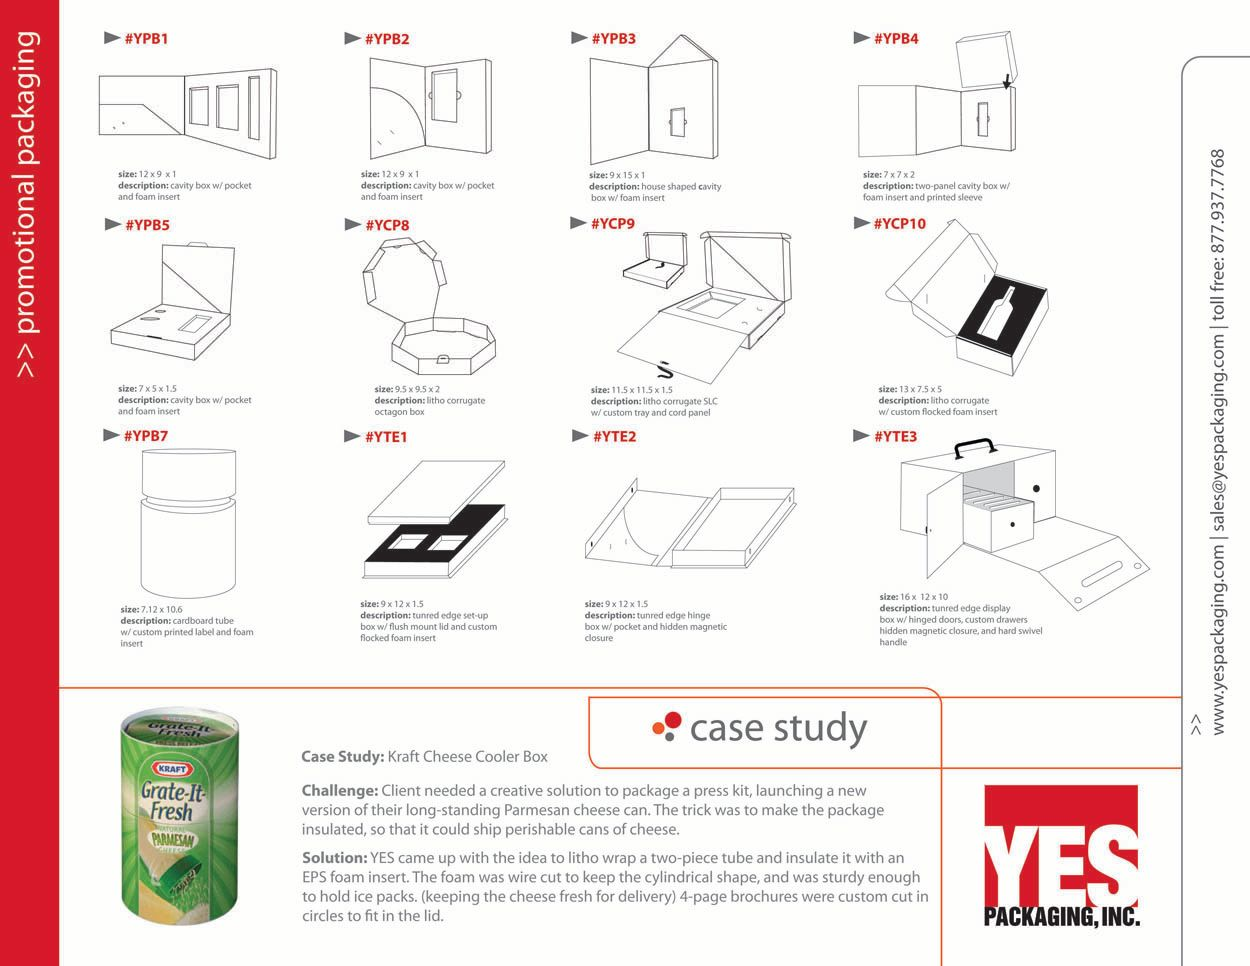 Product Launch Kit Catalog Page